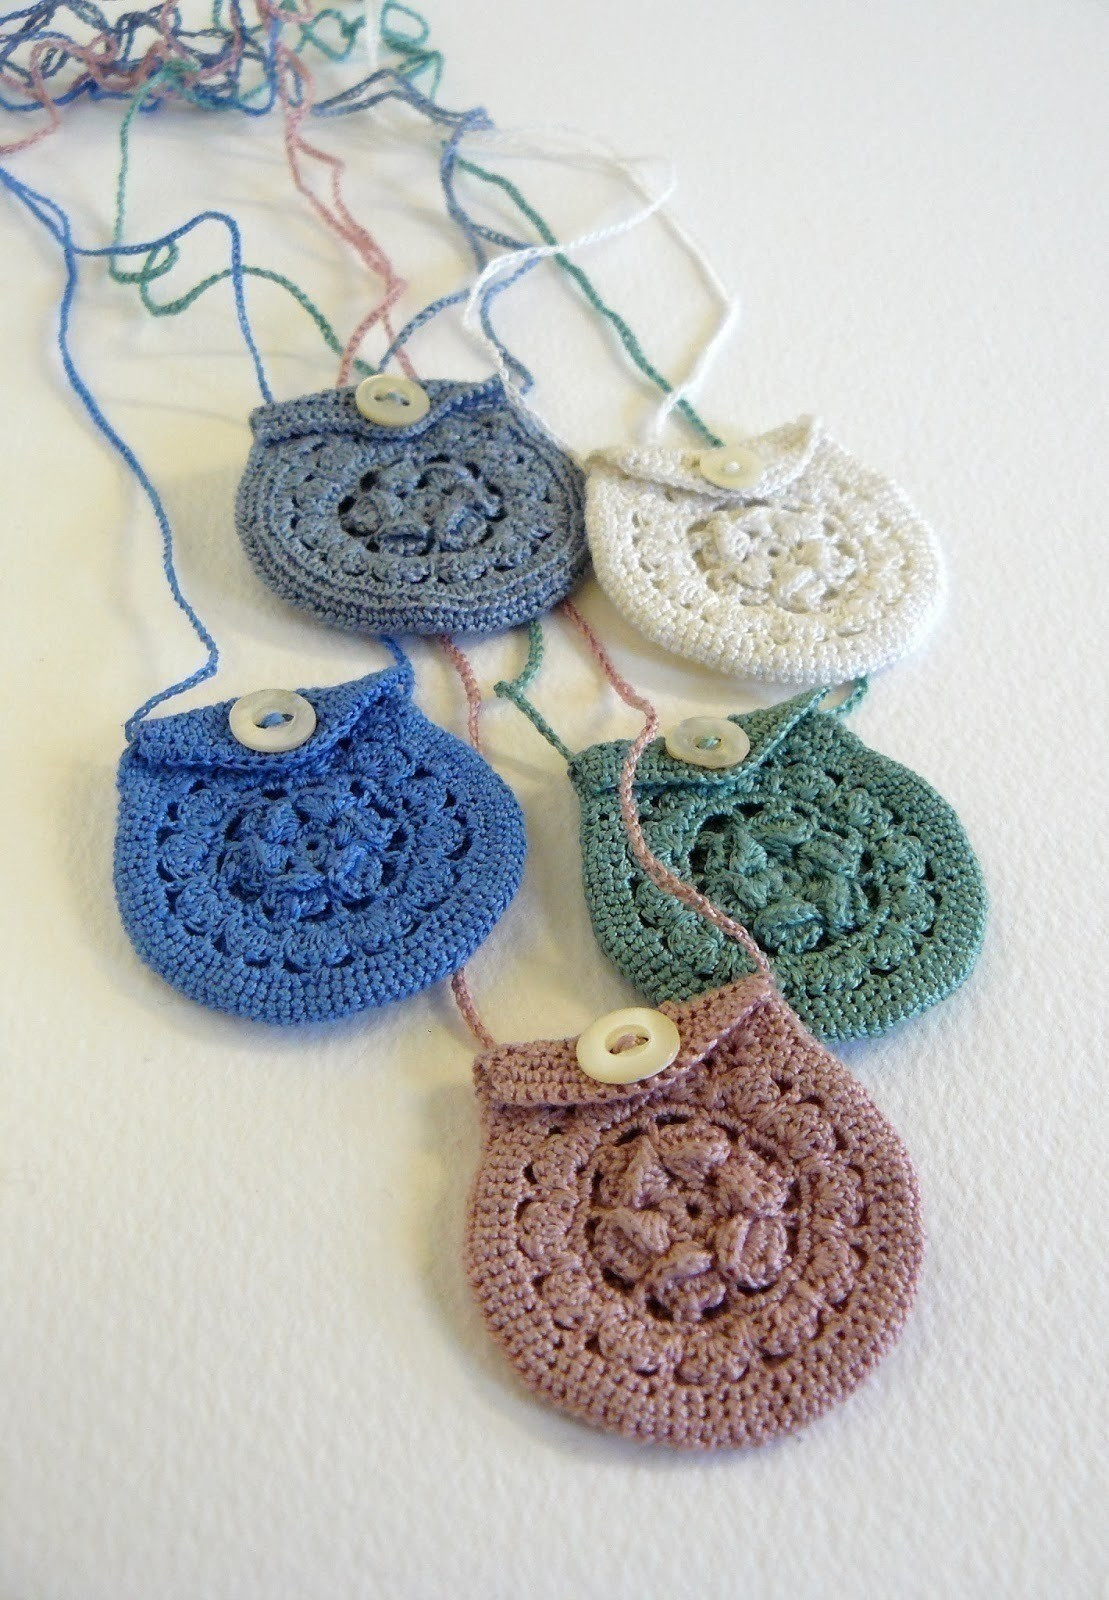 Crochet Pouch Fresh Tiny Crochet Keepsake Necklaces · A Knit Crochet Of Awesome 48 Pics Crochet Pouch